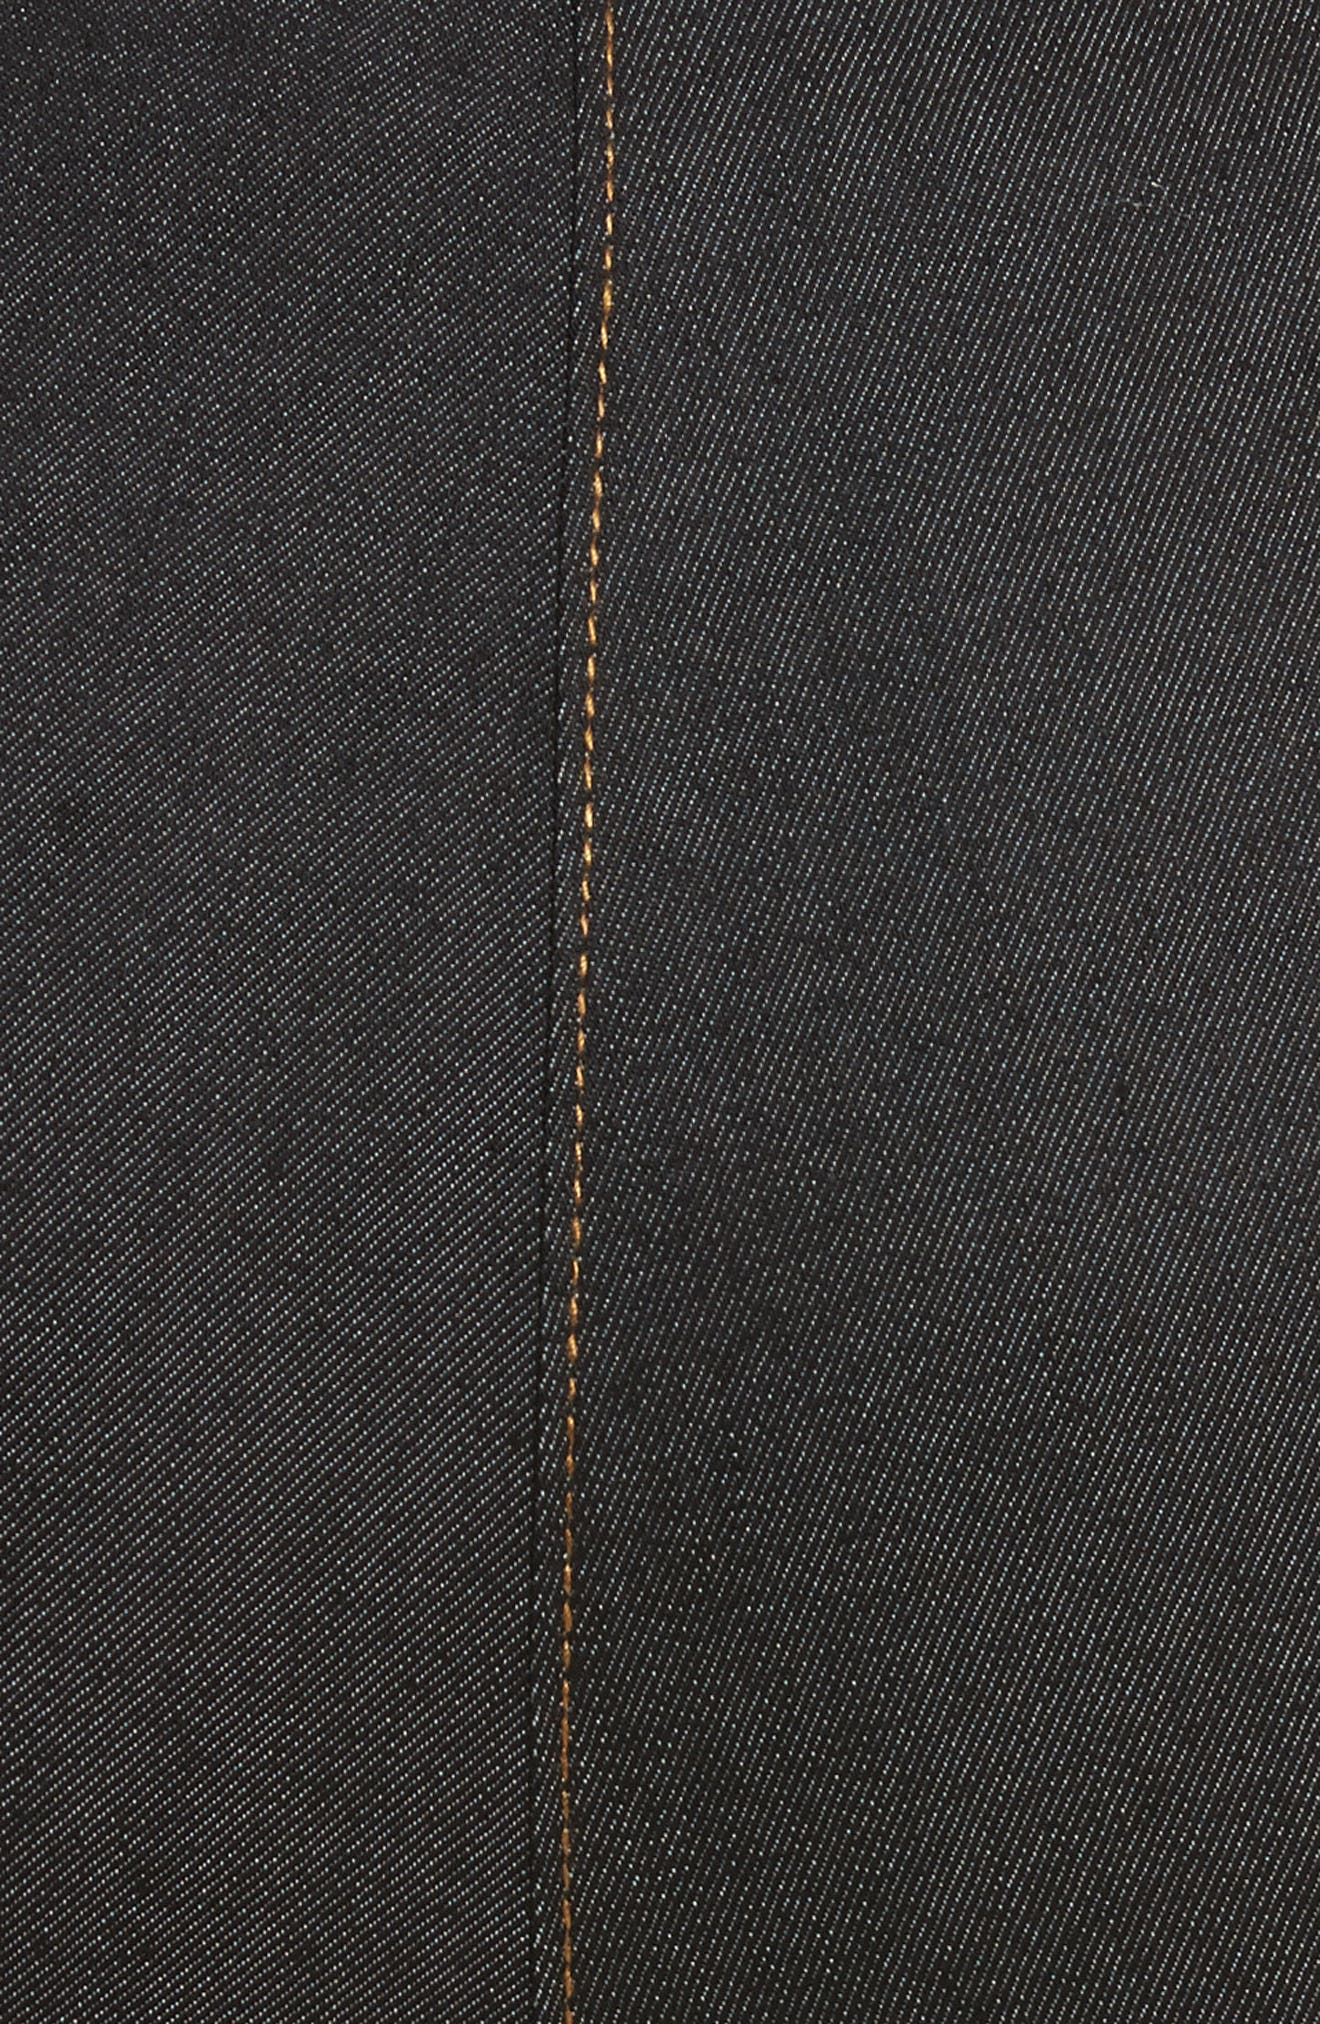 Alternate Image 5  - Cinq à Sept Andie Lace Front Skinny Ankle Jeans